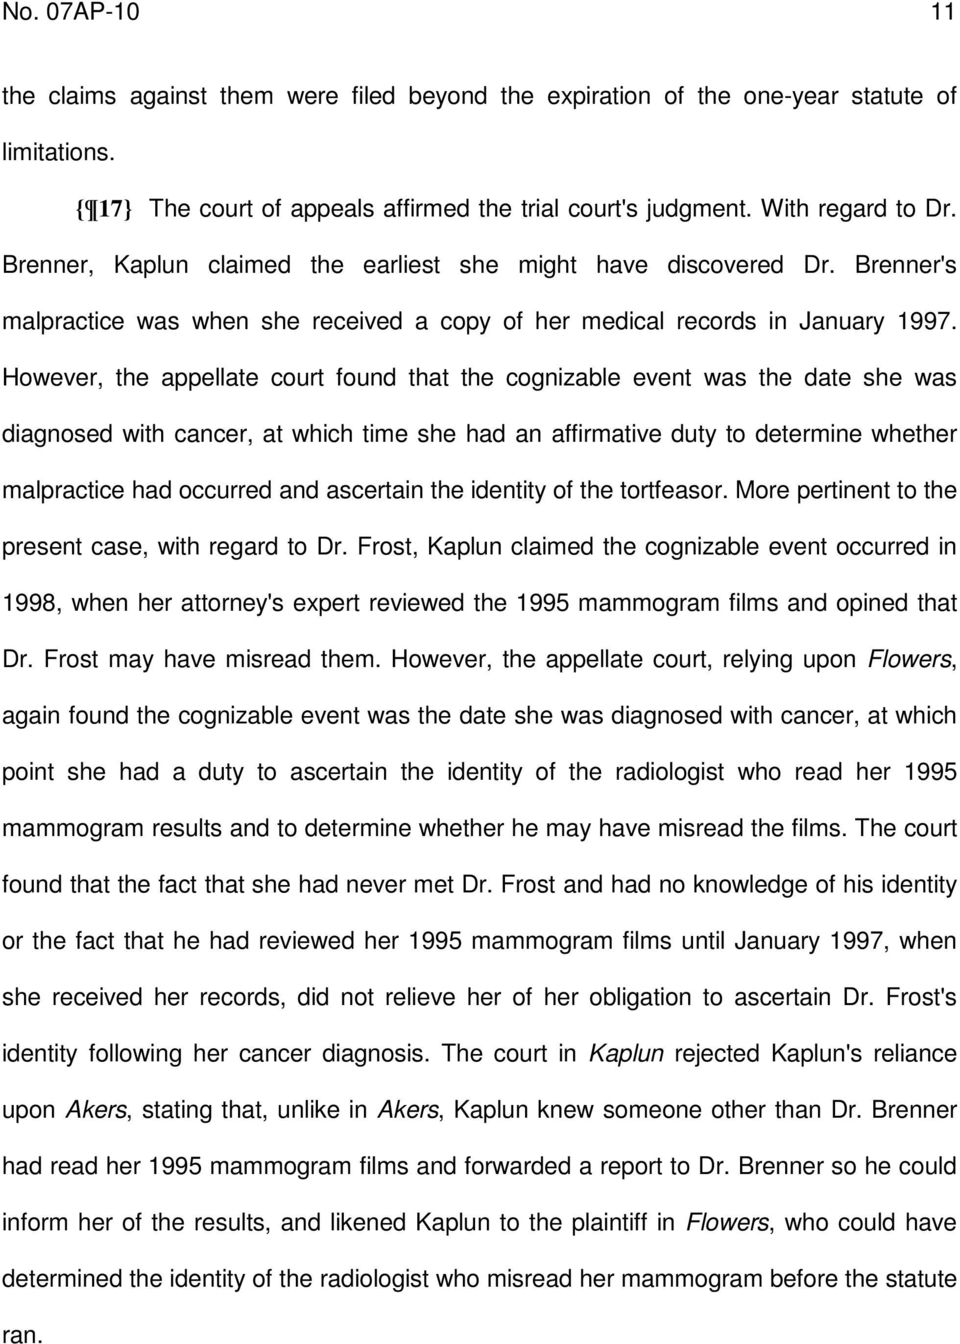 However, the appellate court found that the cognizable event was the date she was diagnosed with cancer, at which time she had an affirmative duty to determine whether malpractice had occurred and